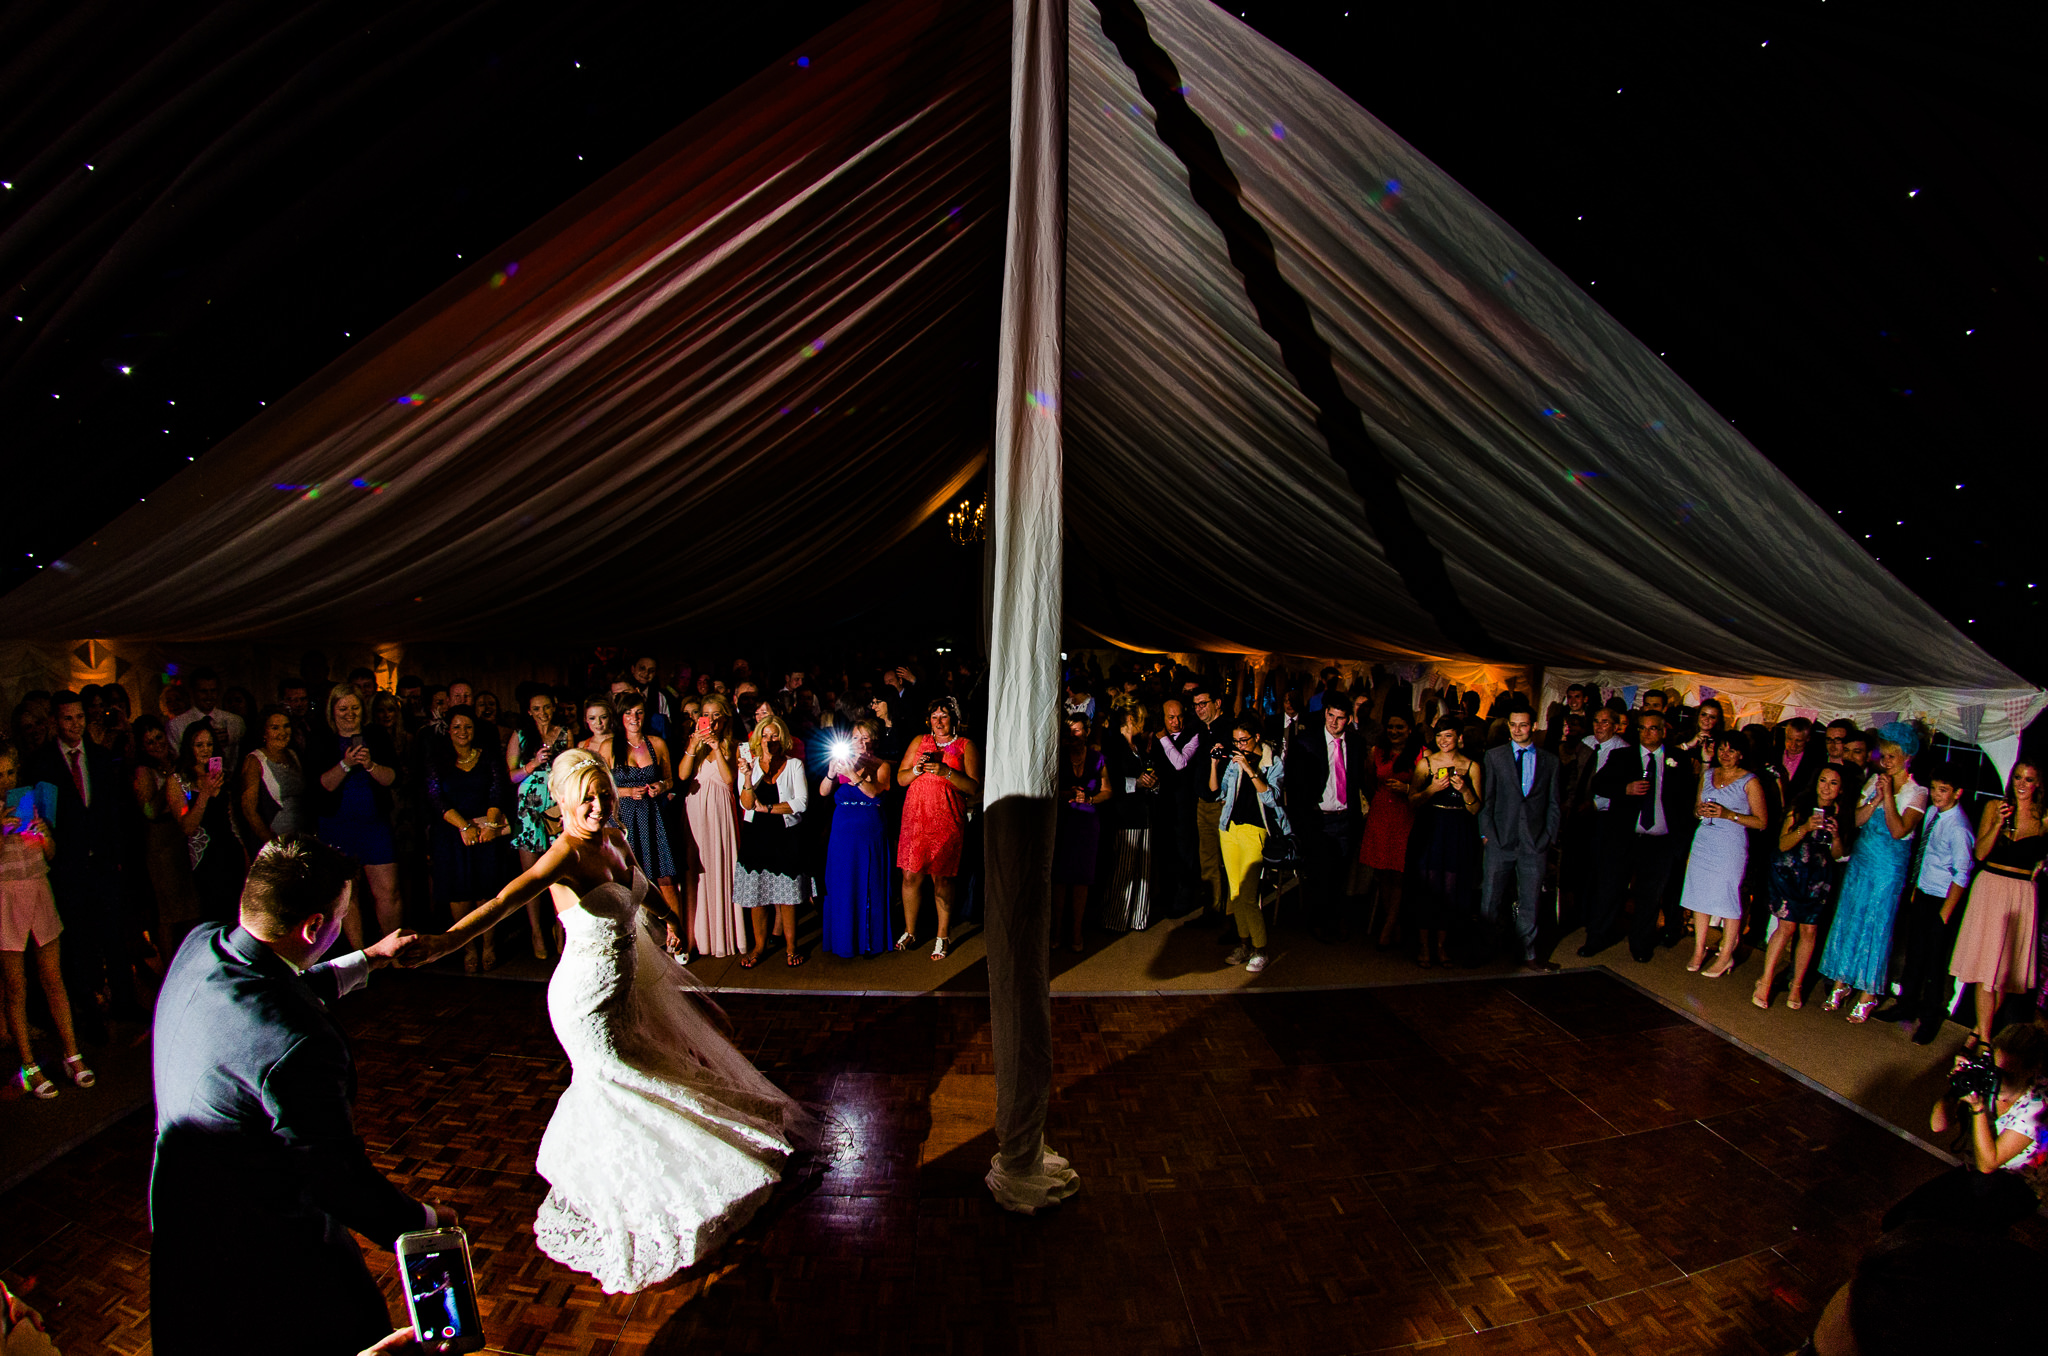 Epic Wide of First Dance to Thinking Out Loud before it was famous. Smiling crowd gathered around the dancefloor.